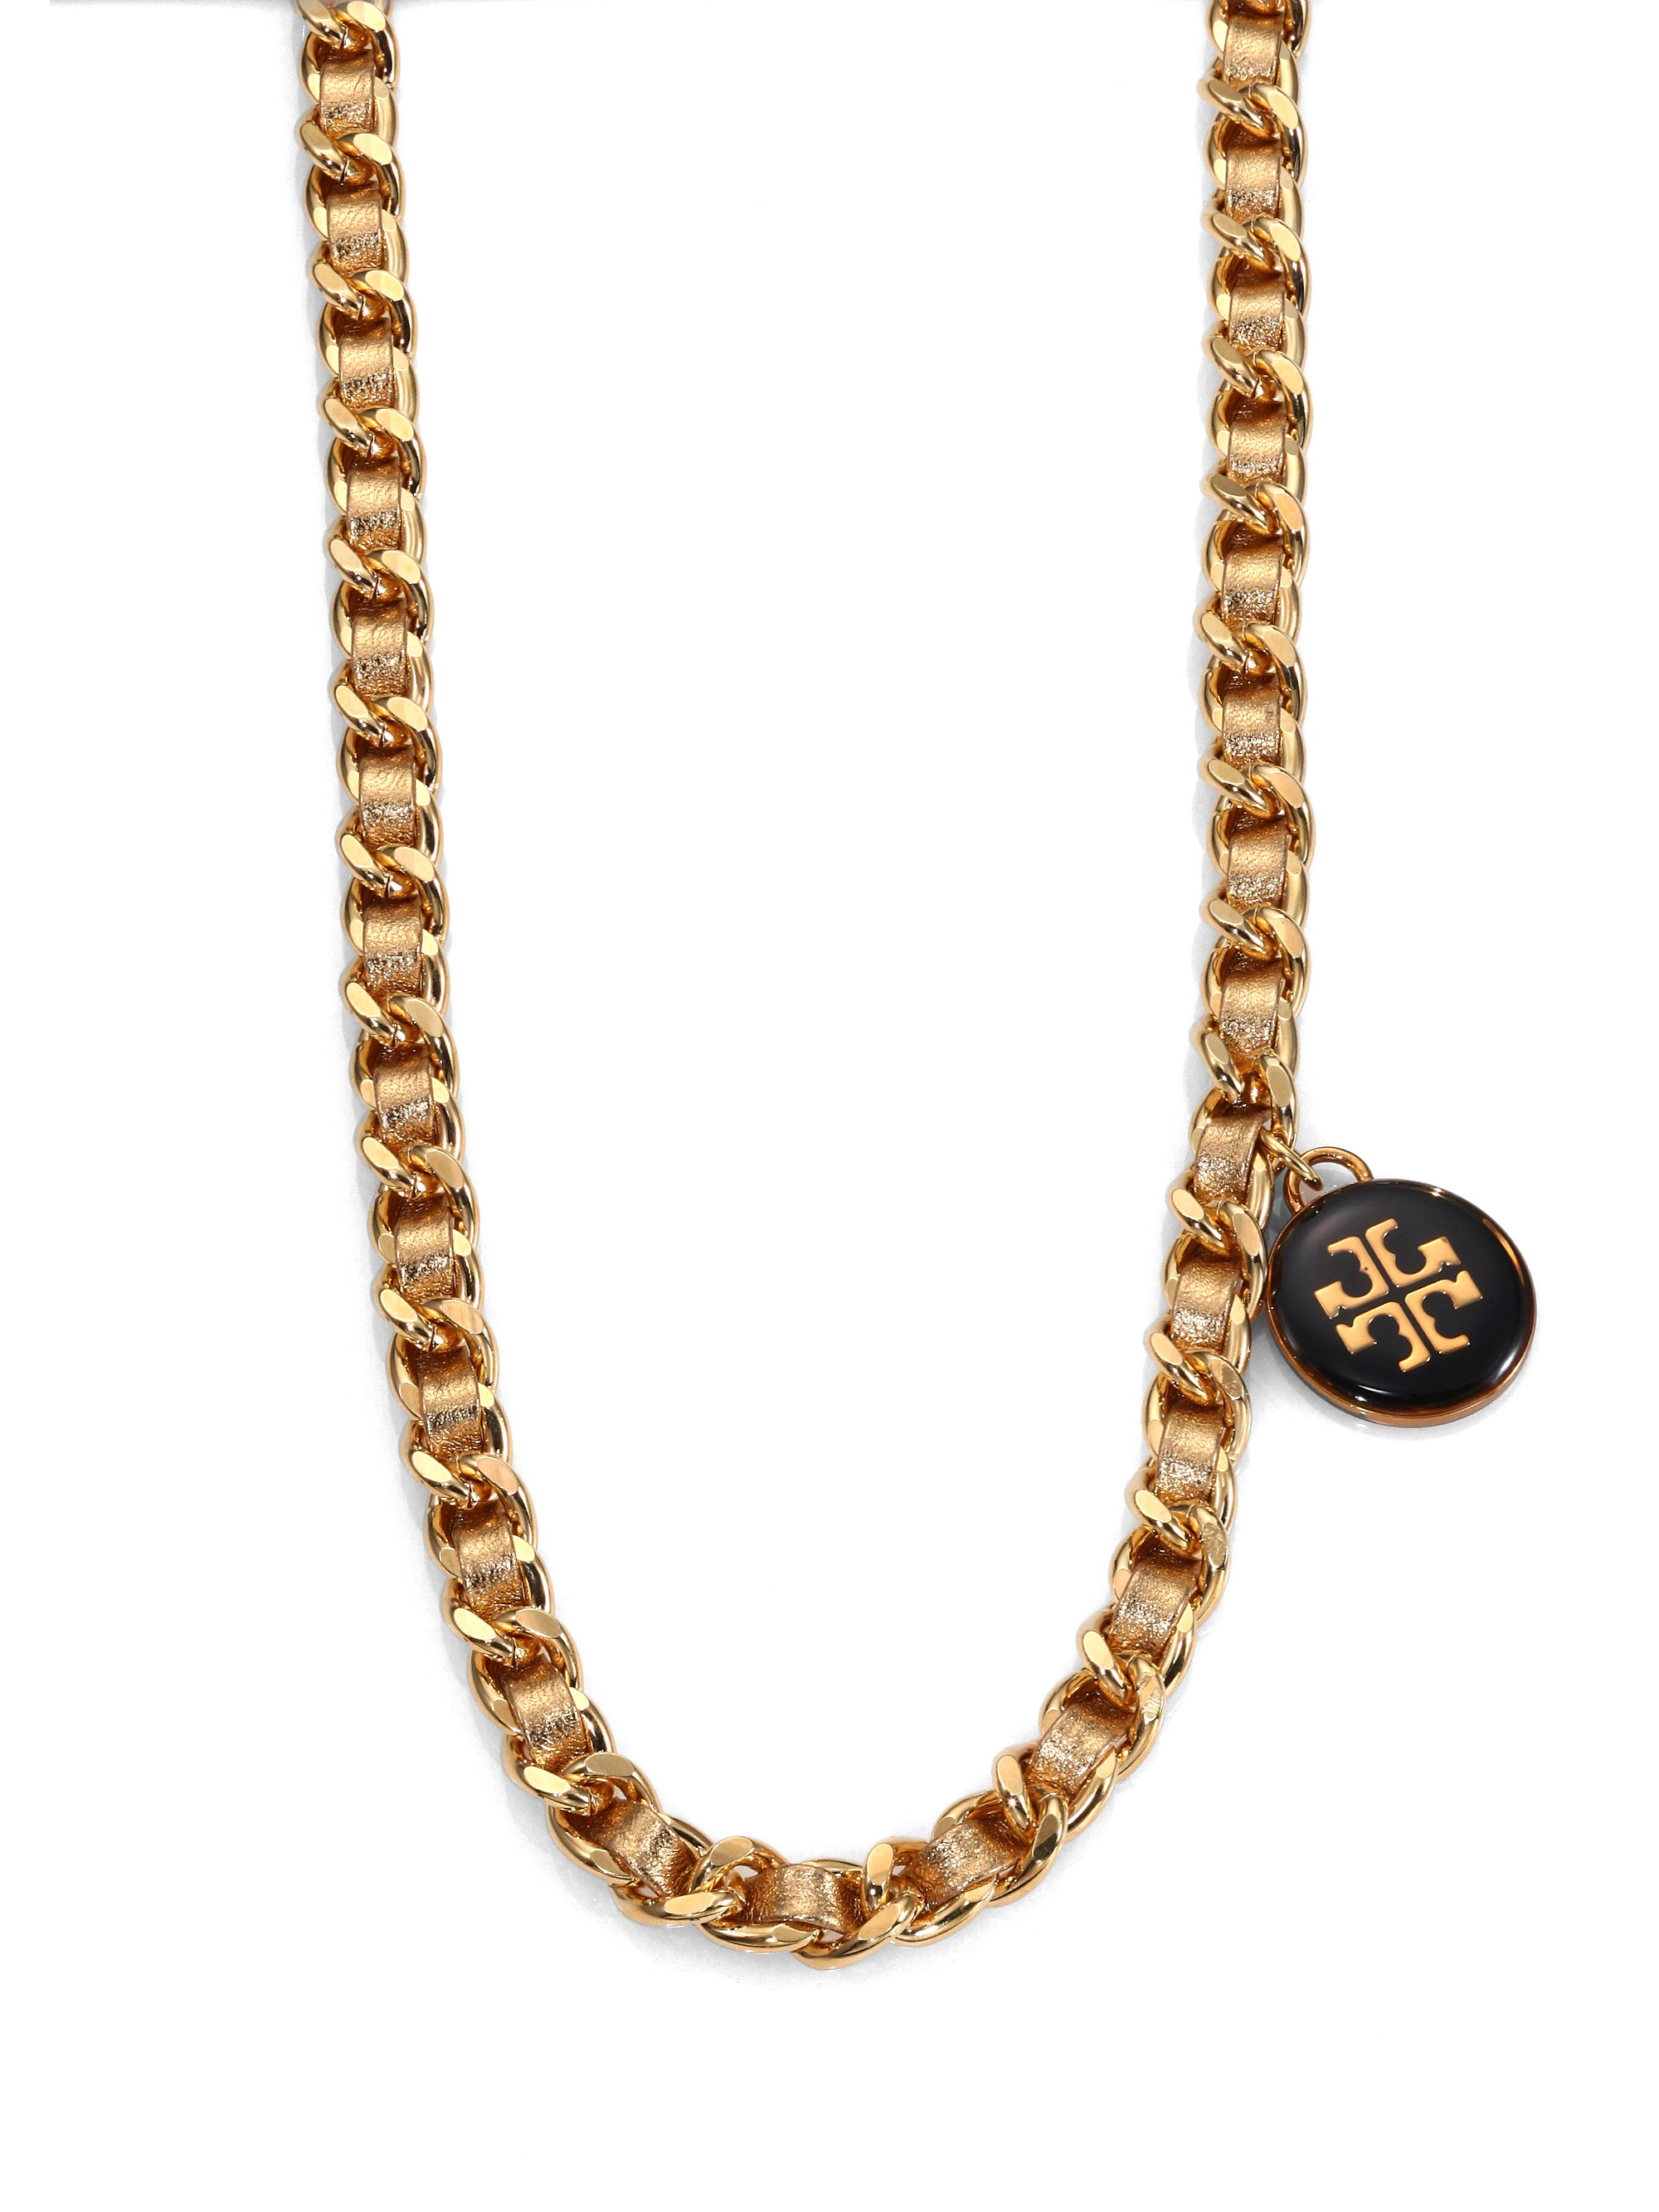 Tory Burch Woven Metallic Leather Chain Logo Necklace In